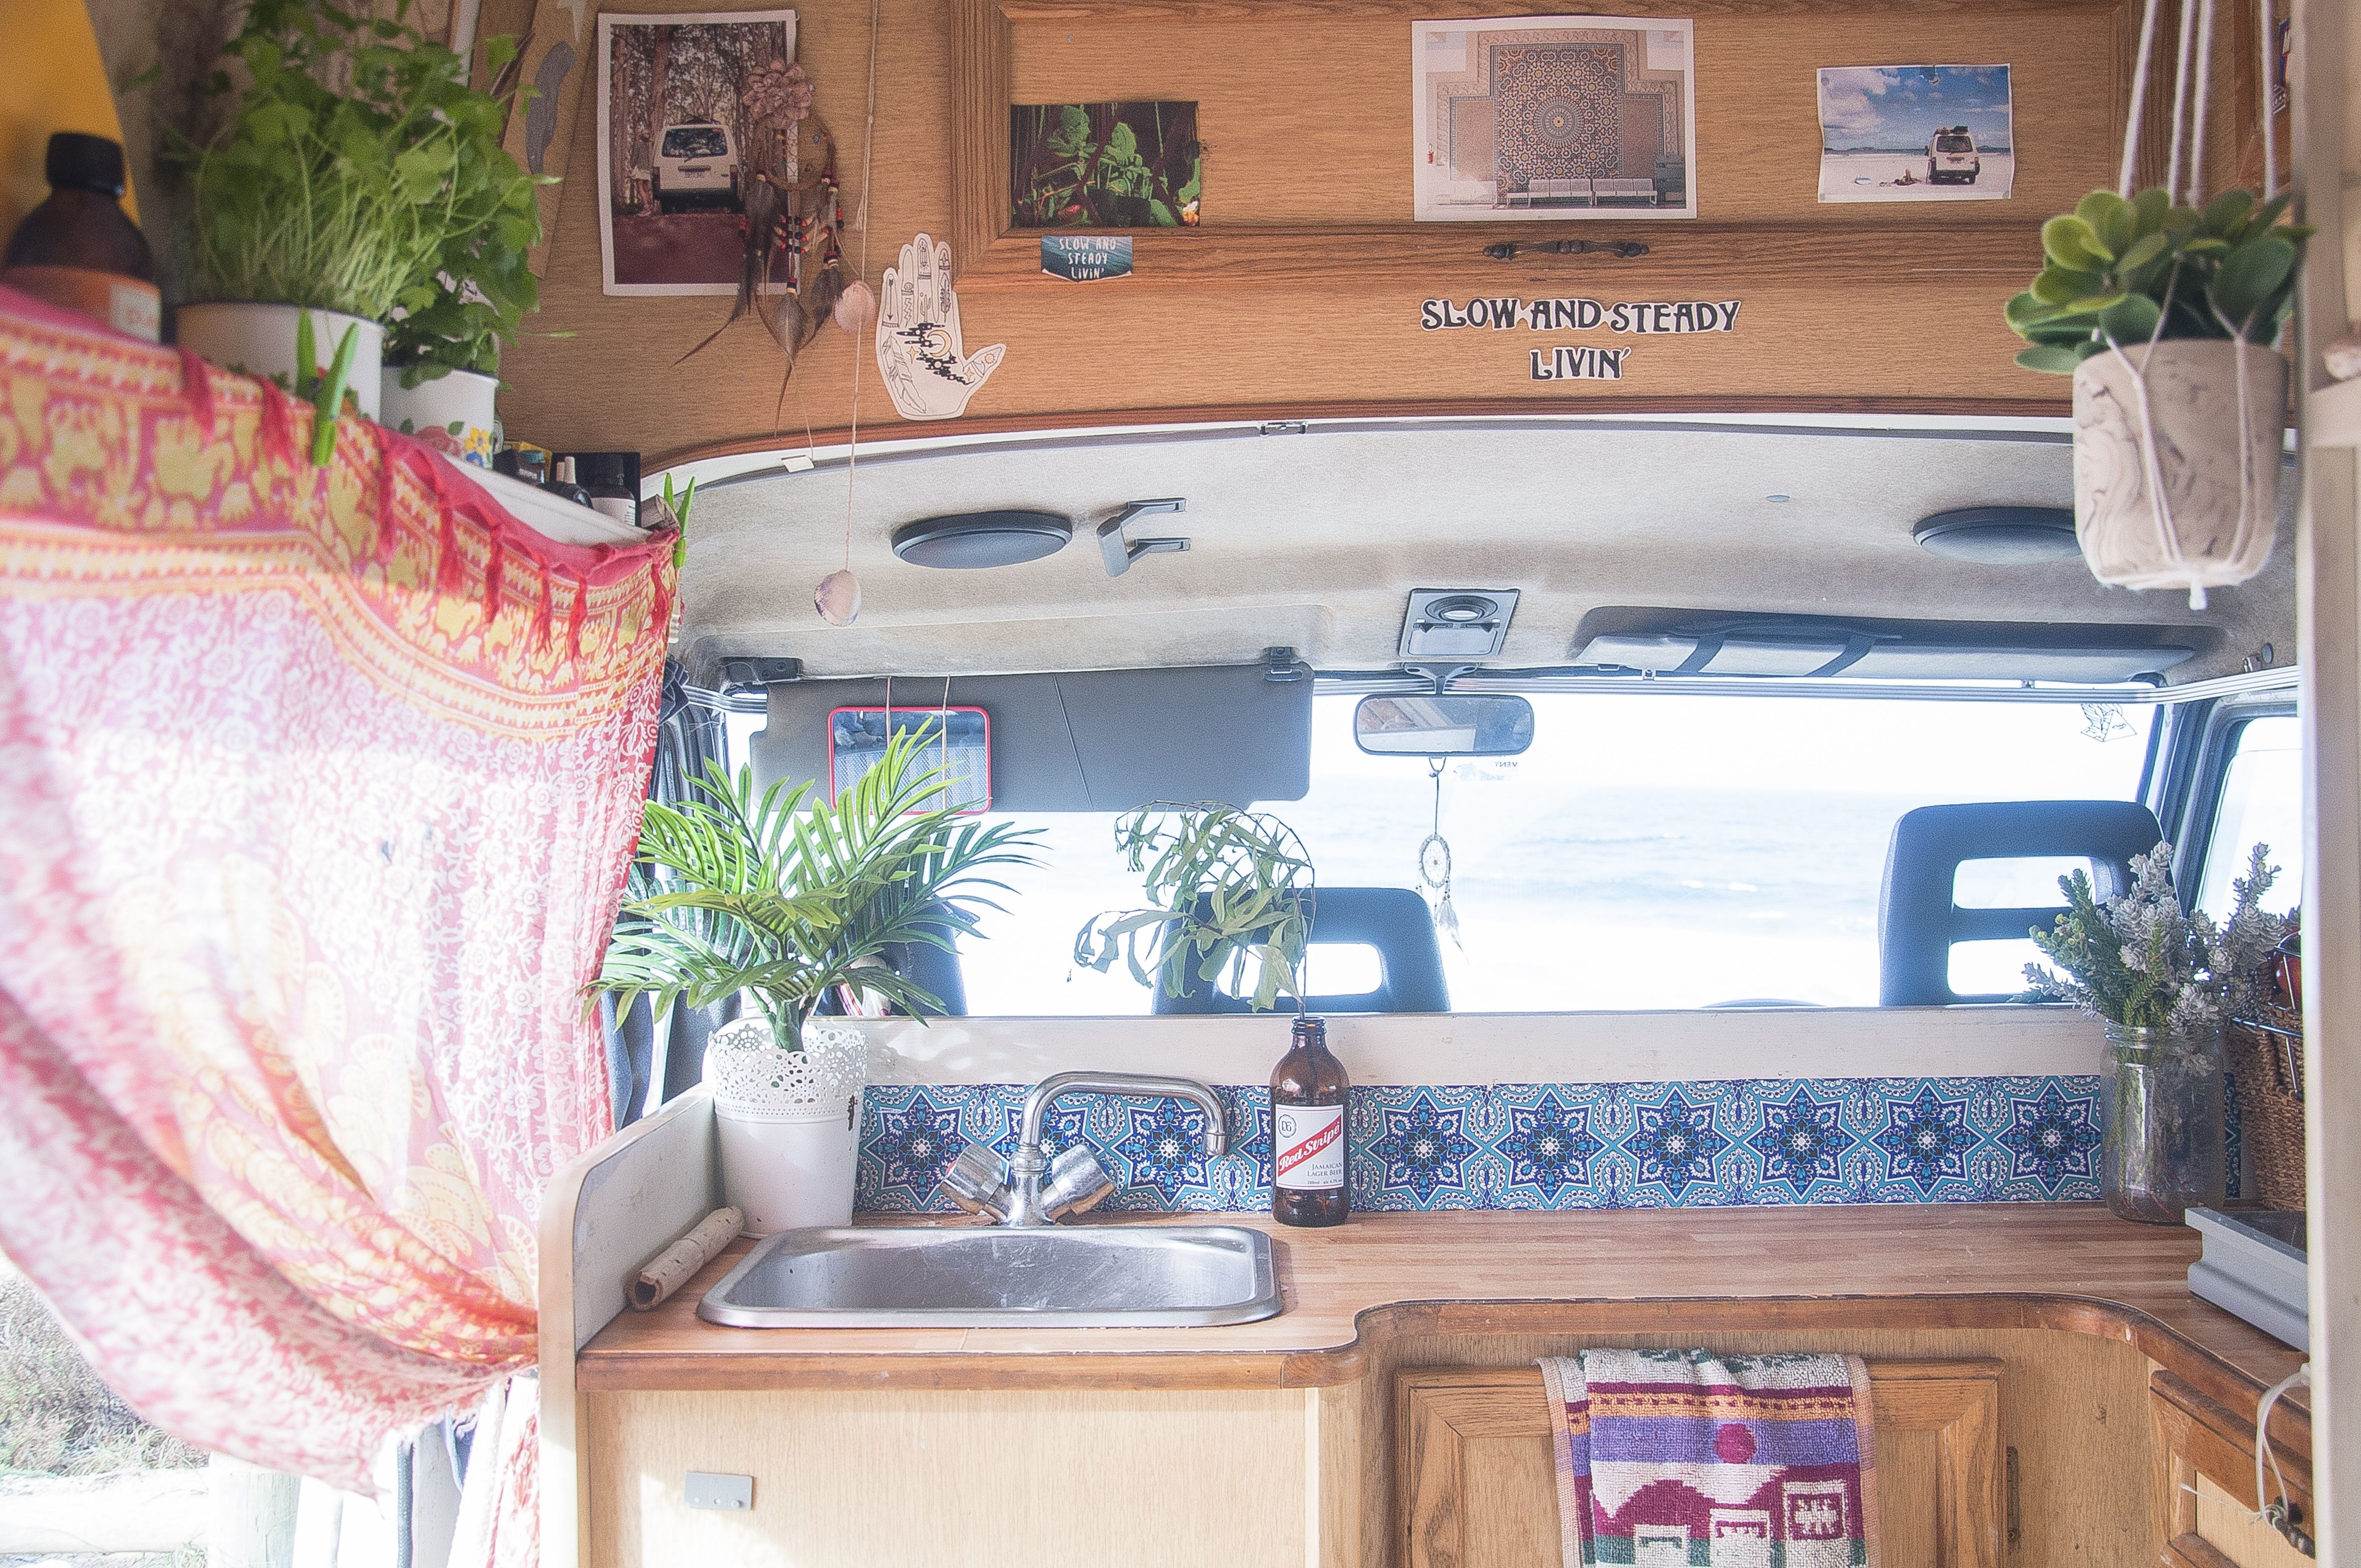 Two People Live in This Cozy, 140-Square-Foot Van | Square ...